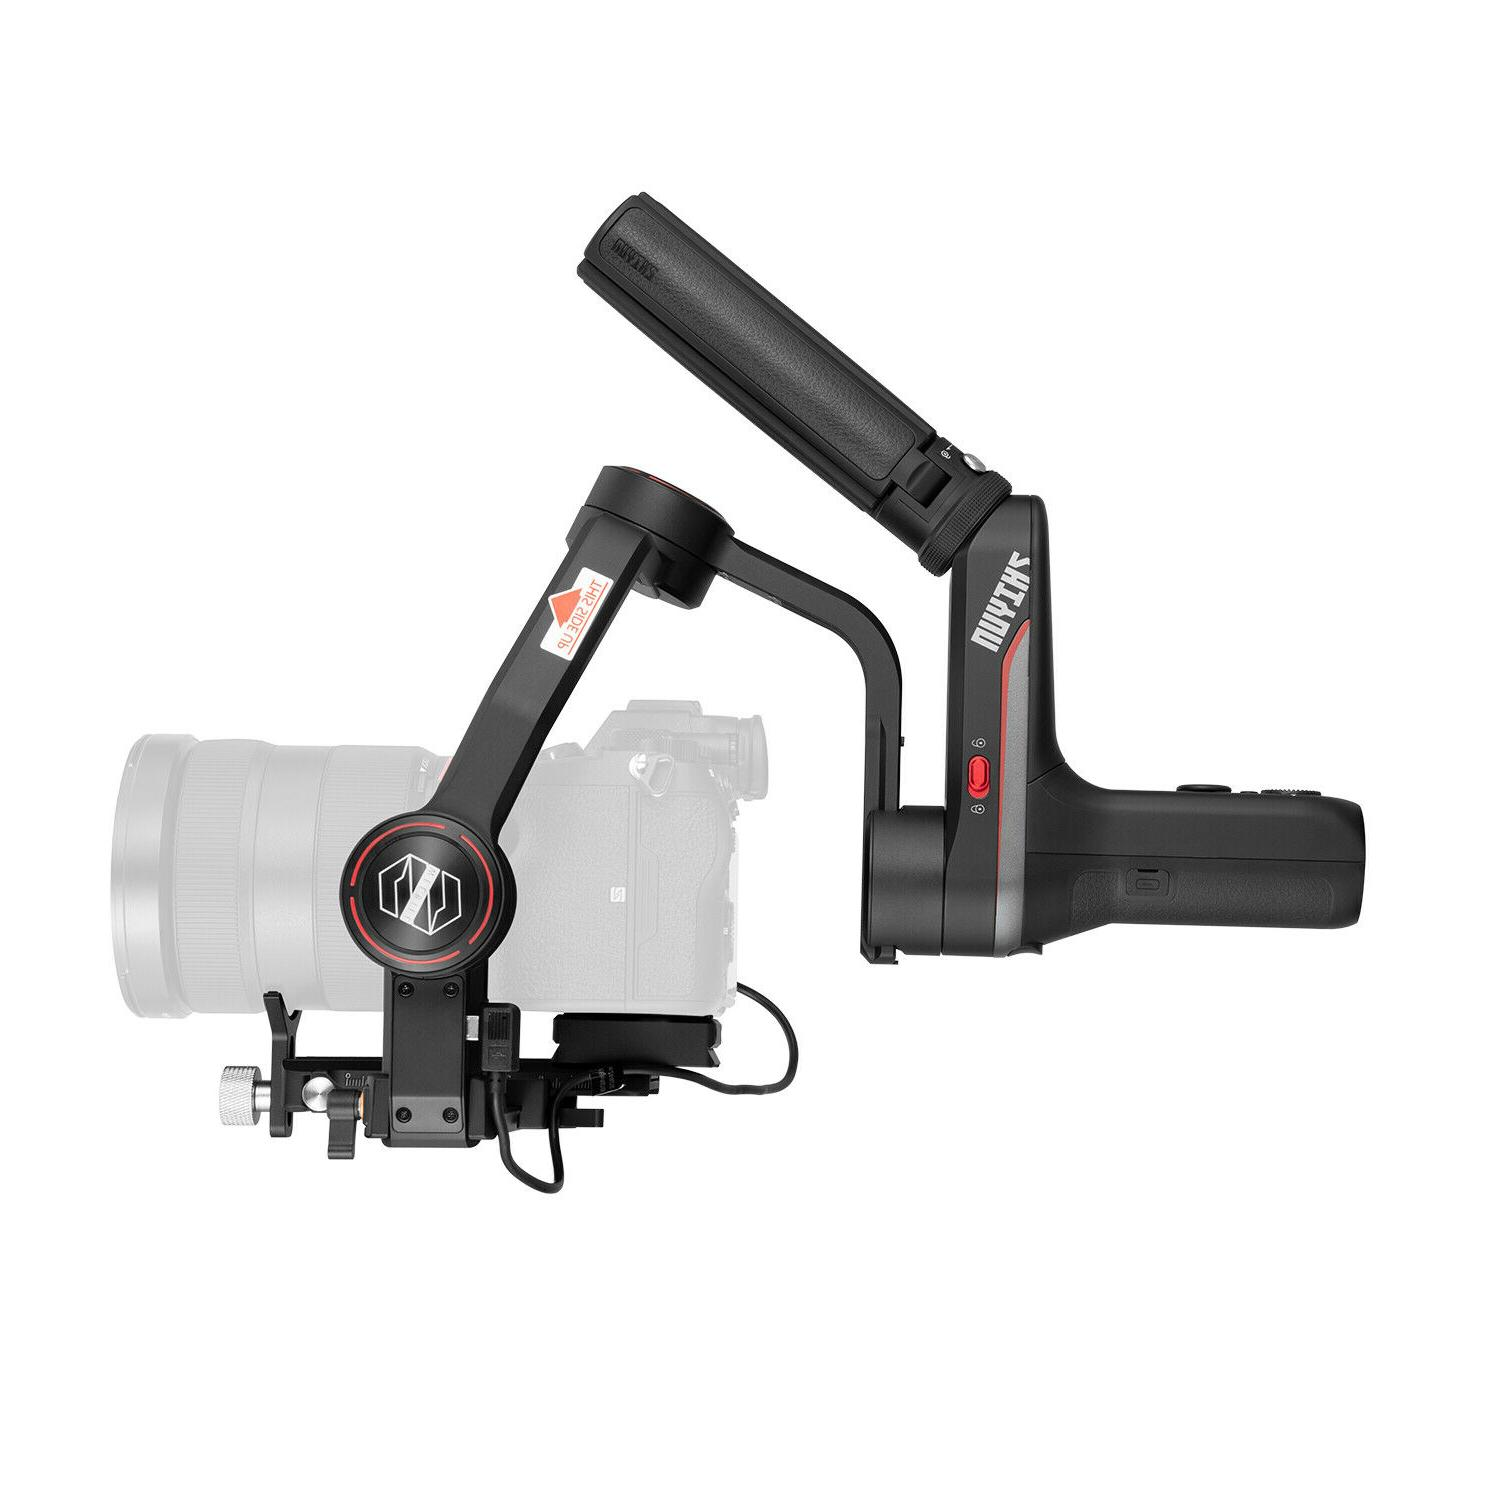 US WEEBILL S Gimbal Stabilizer